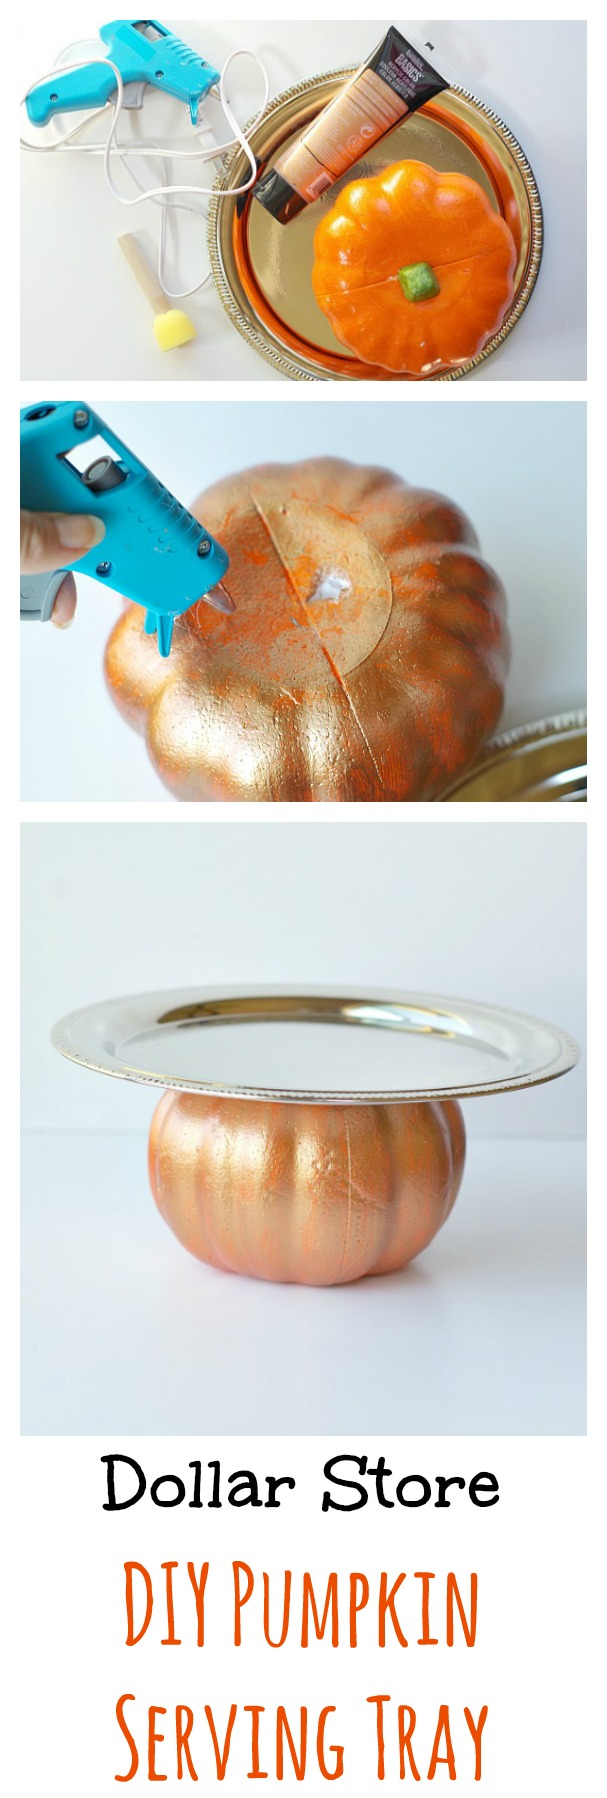 Dollar Store DIY Pumpkin Serving Tray